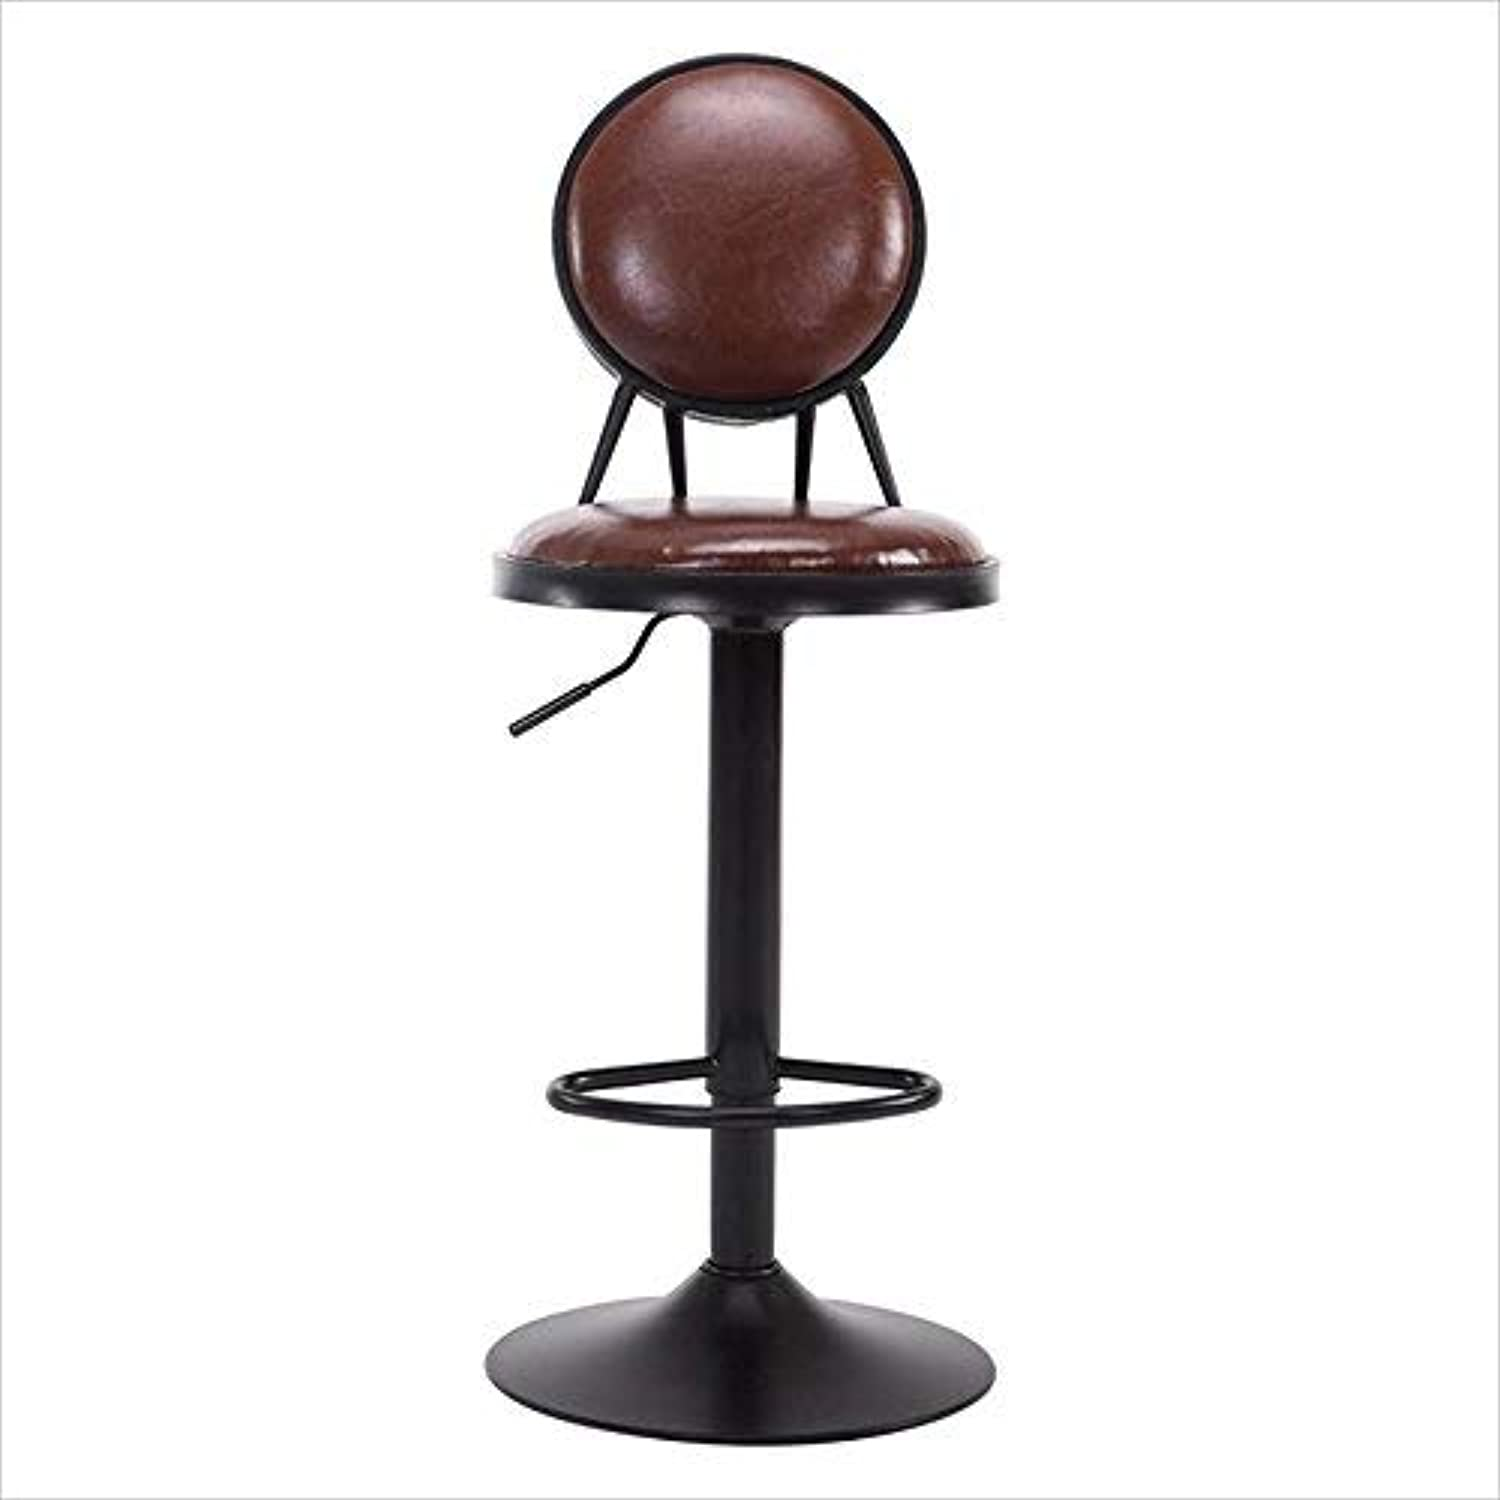 Bar Stool Iron Chair Round Stool Pub High Stool Dining Chair Industrial Style Height Adjustable 6080cm